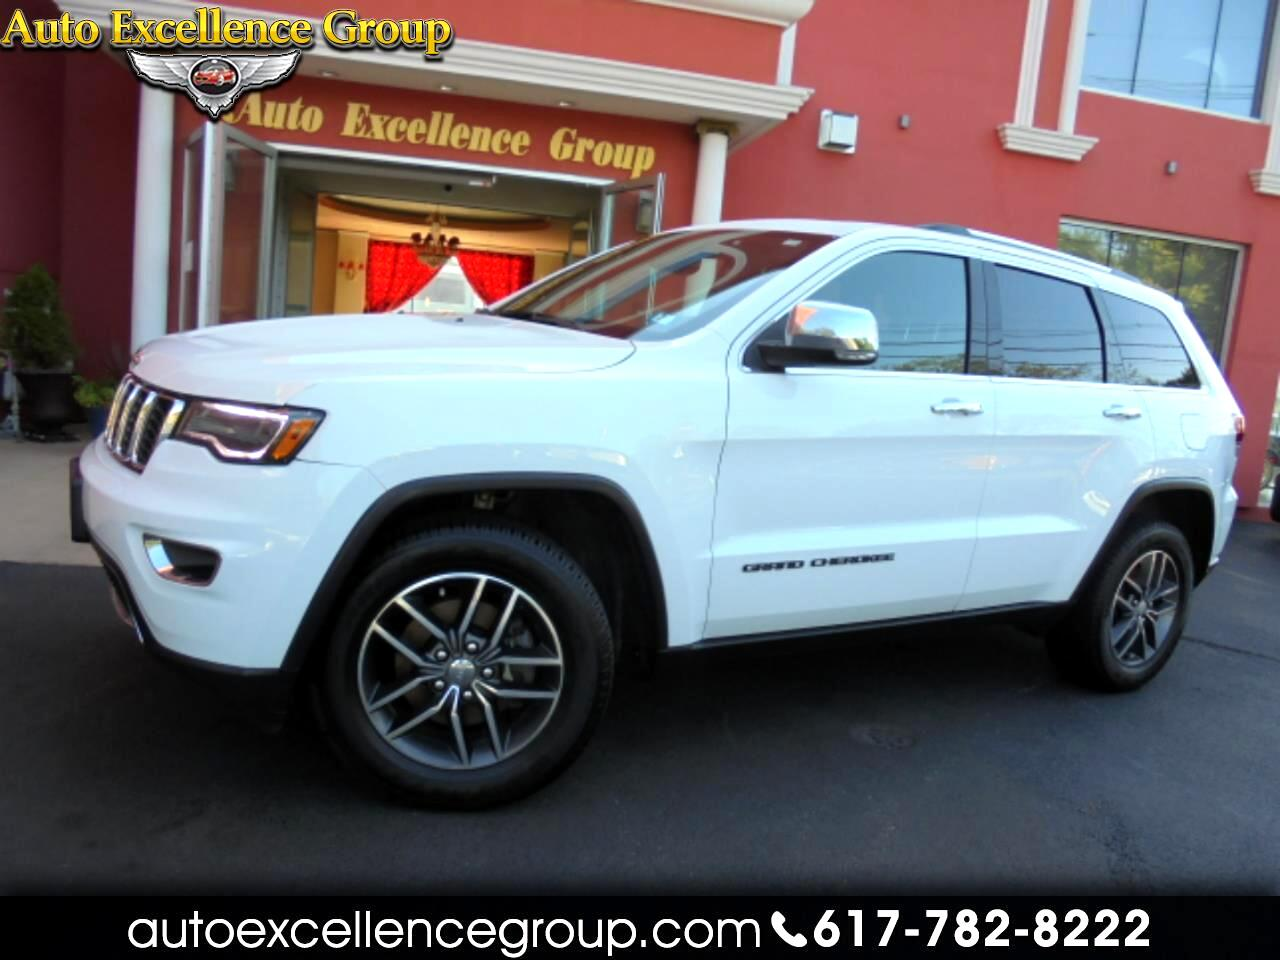 used cars for sale boston ma 01906 auto excellence group boston ma 01906 auto excellence group